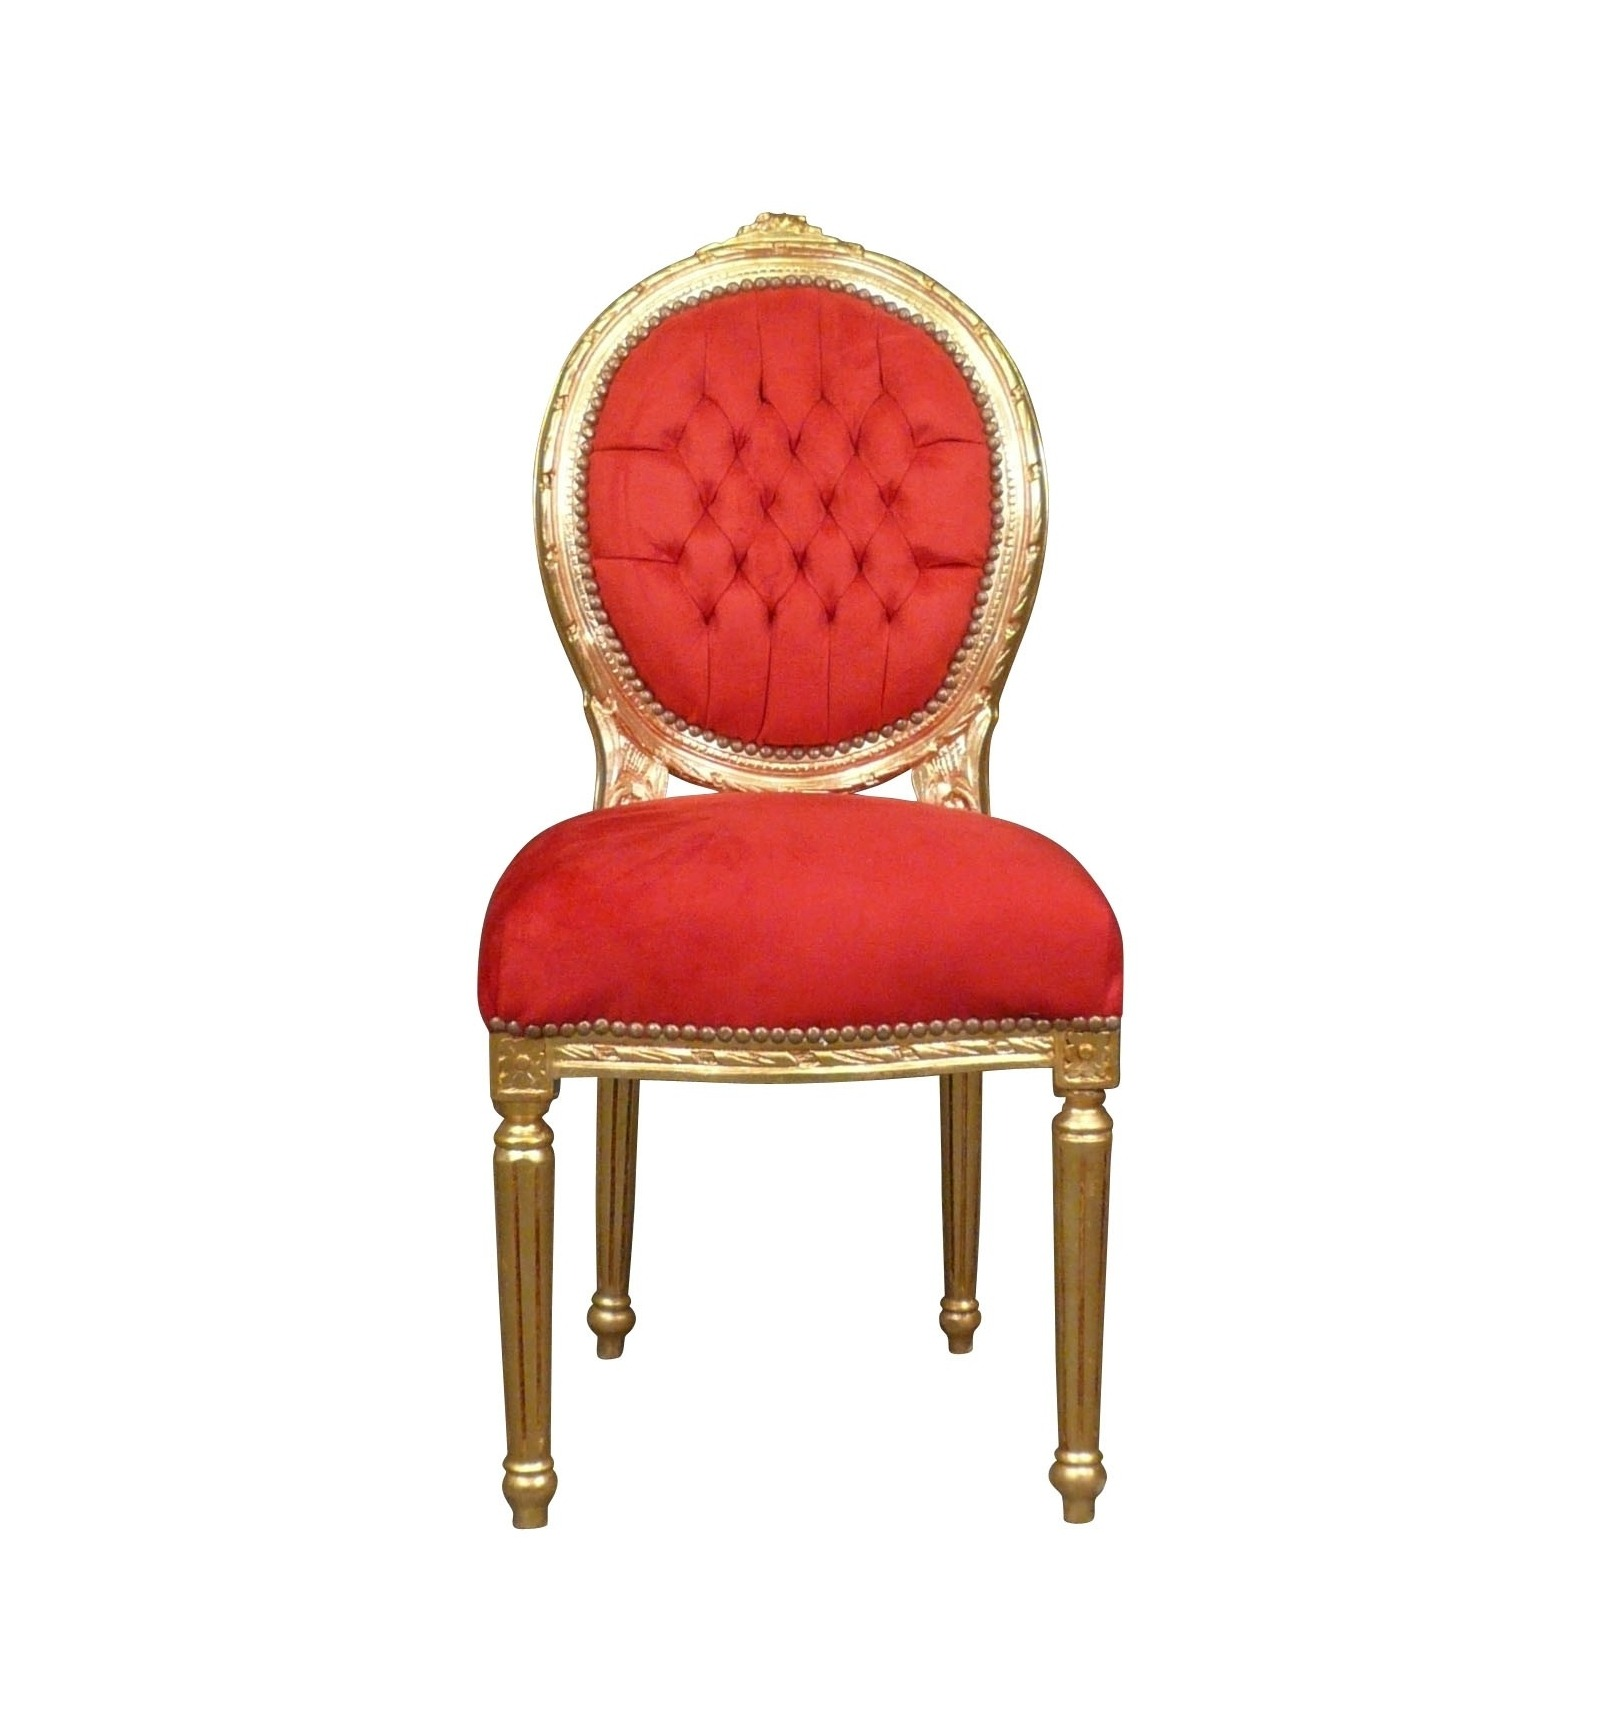 chaises louis 15 top chaise medaillon style louis xvi nayar with chaises louis 15 gallery of. Black Bedroom Furniture Sets. Home Design Ideas